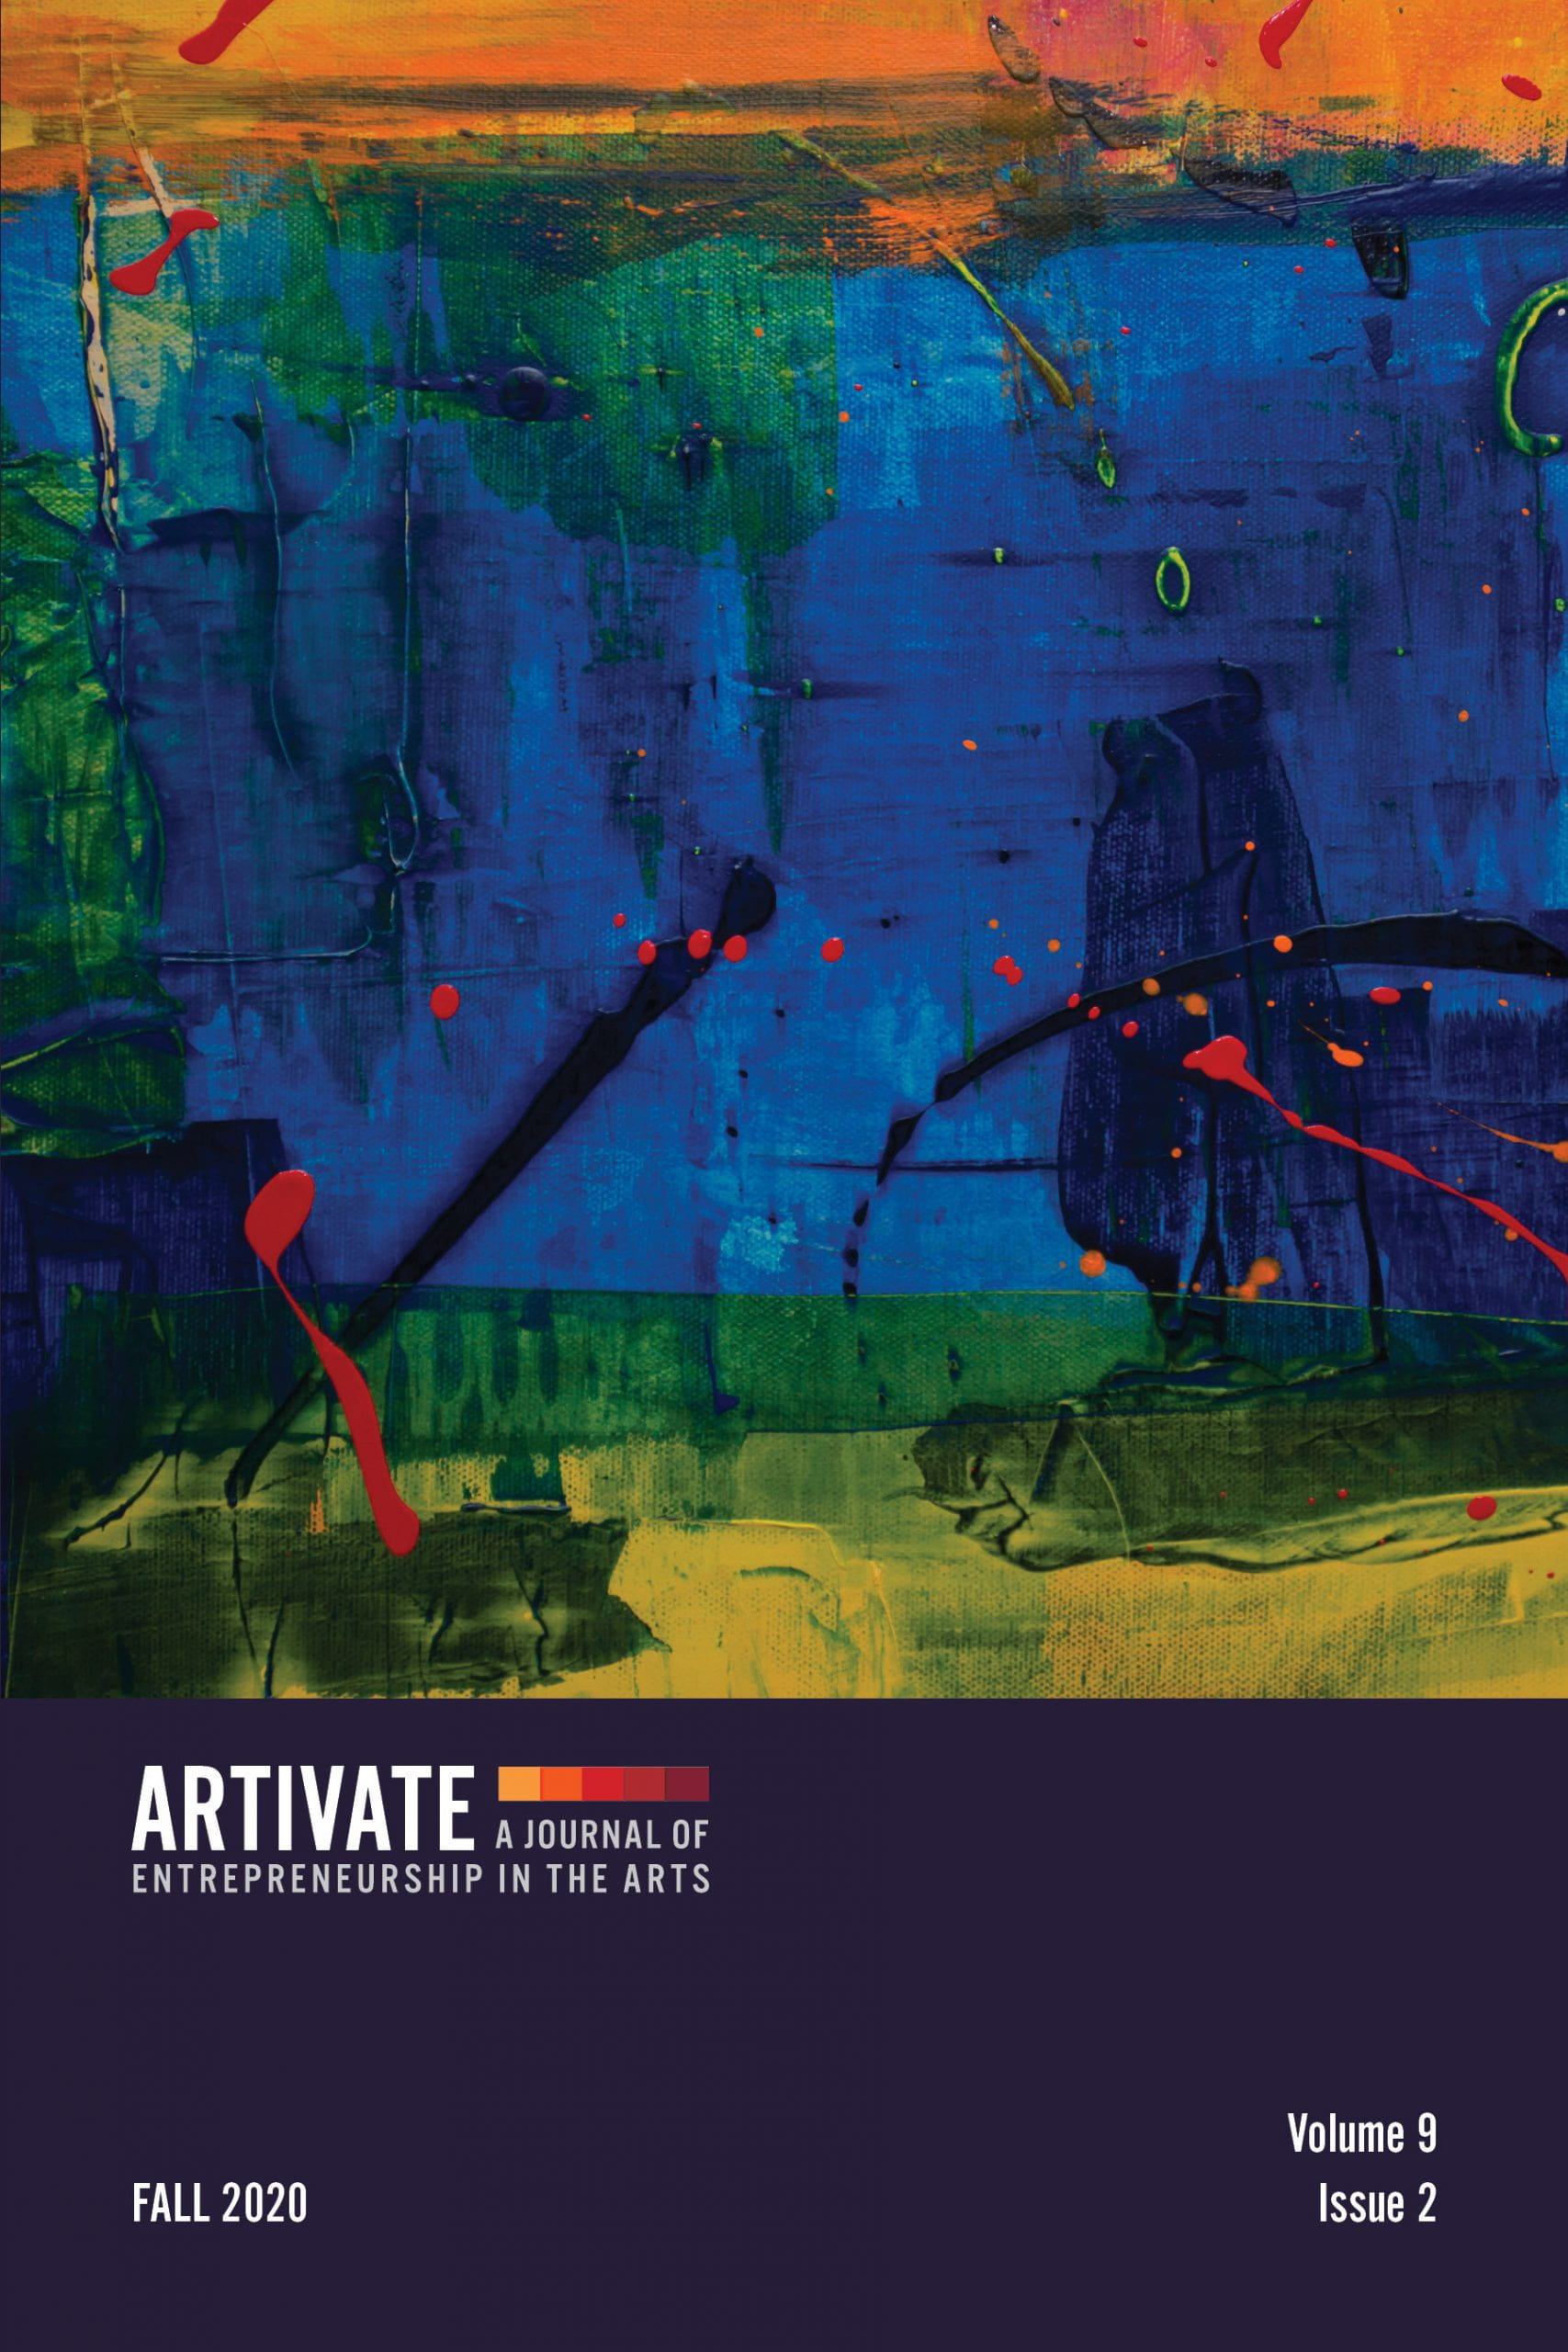 cover for the journal Artivate: A Journal of Entrepreneurship in the Arts Volume 9 issue 2